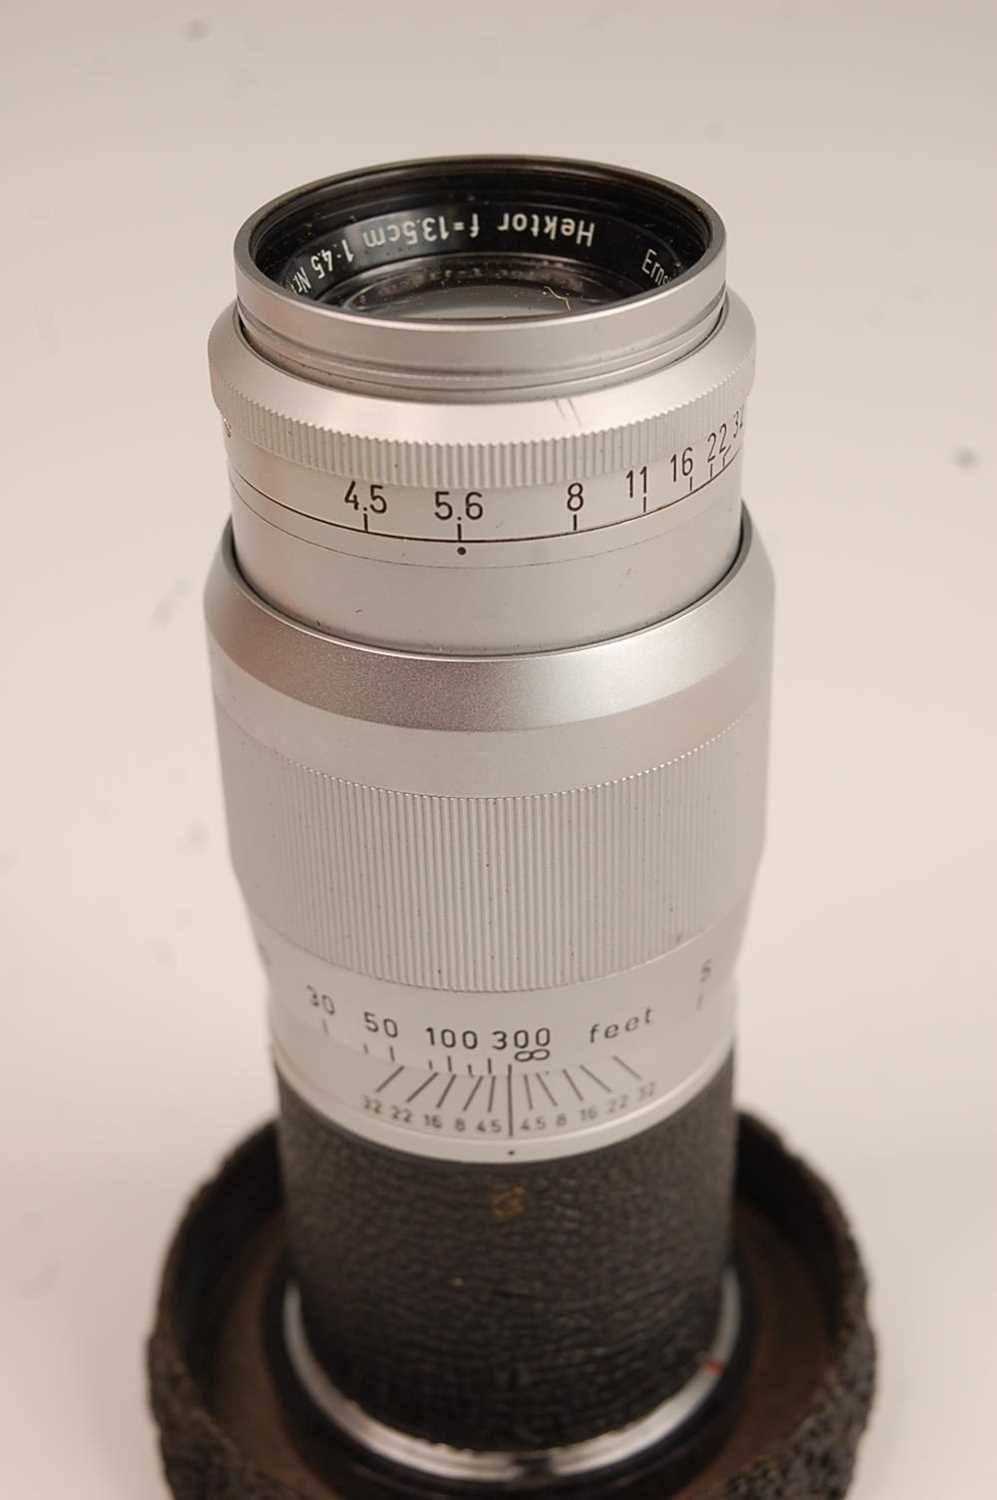 A Leica M3 35mm Rangefinder camera, serial number M3-732262, with F=5cm 1:2 lens numbered 1254728, - Image 6 of 8